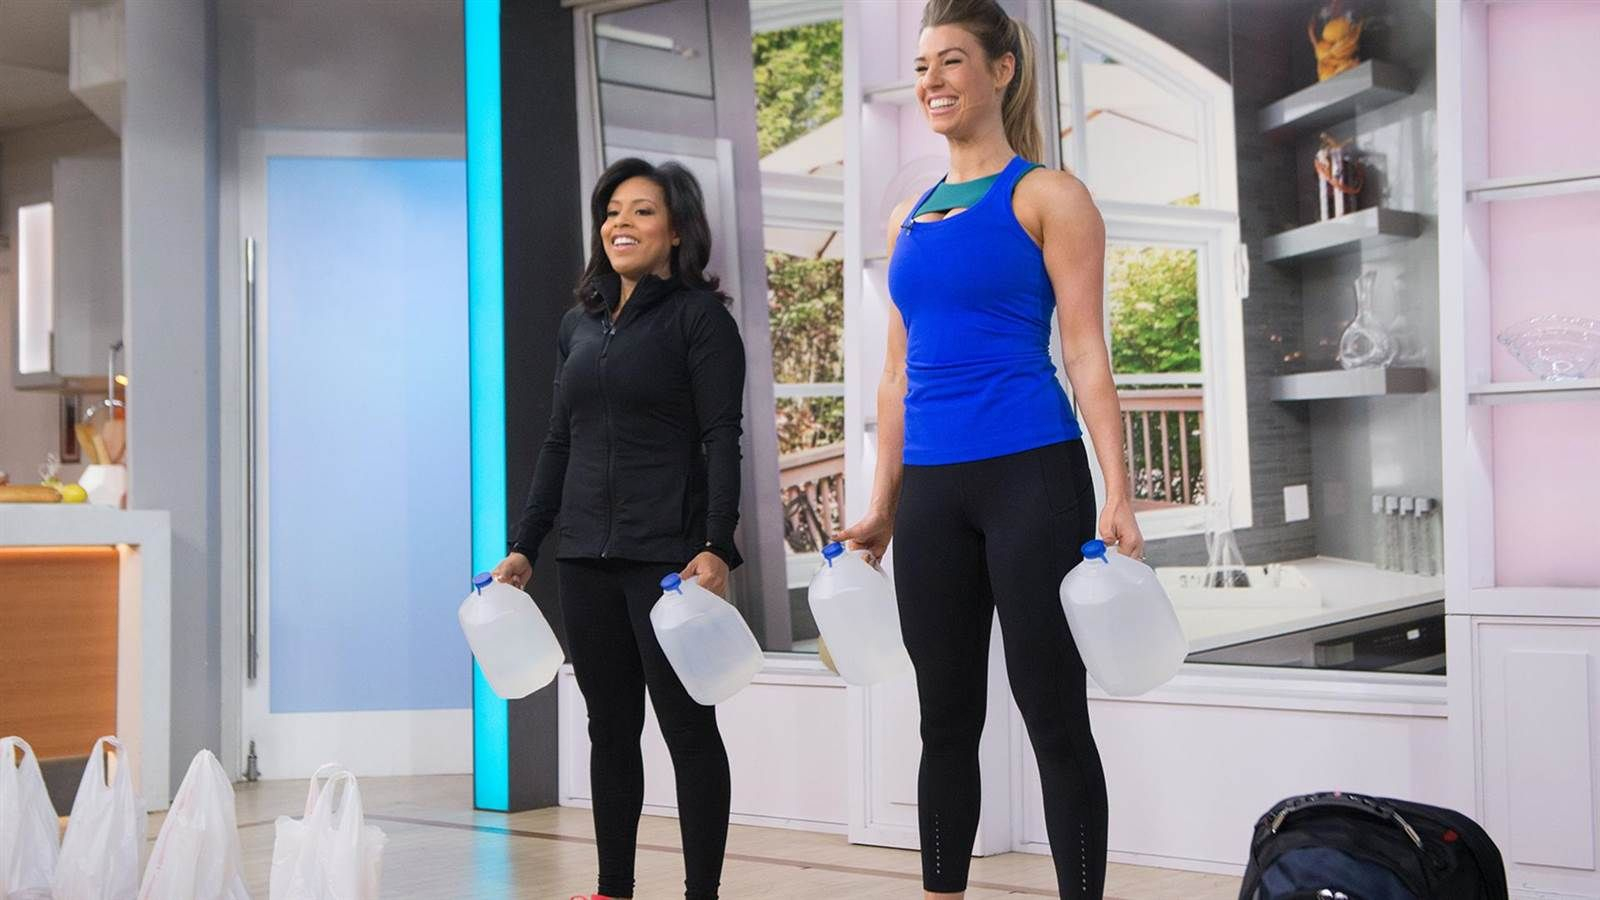 Fitness instructor and Instagram star Anna Victoria shares her no excuse, no gym total fitness workout plan on TODAY. She demonstrates how to use everyday items like backpacks, melons and filled grocery bags to kick your workout plan into gear from the convenience of your home.